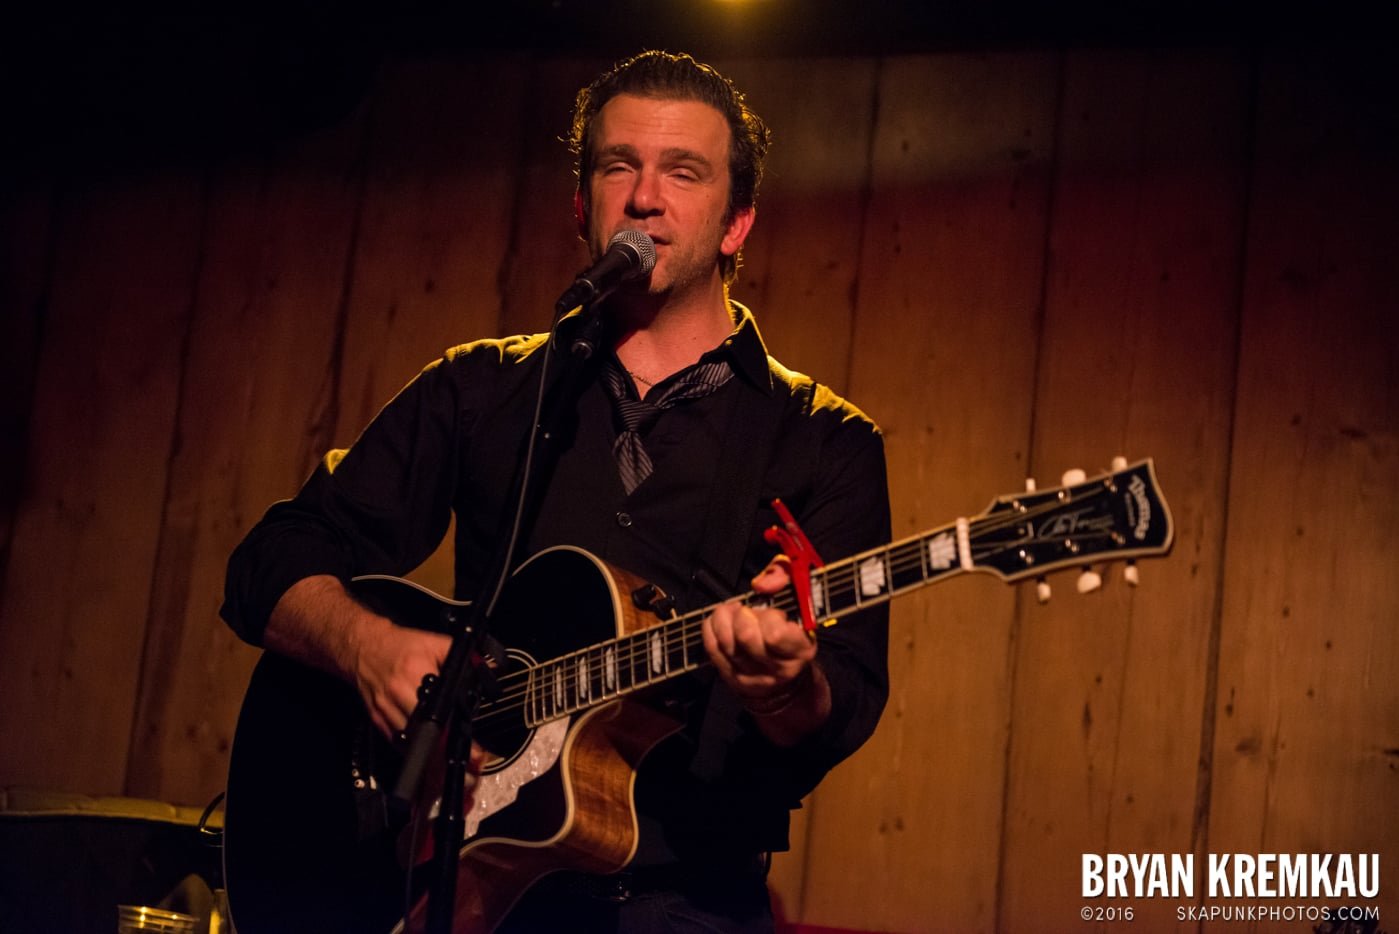 Chris Trapper @ Rockwood Music Hall, NYC - 12.7.13 (2)